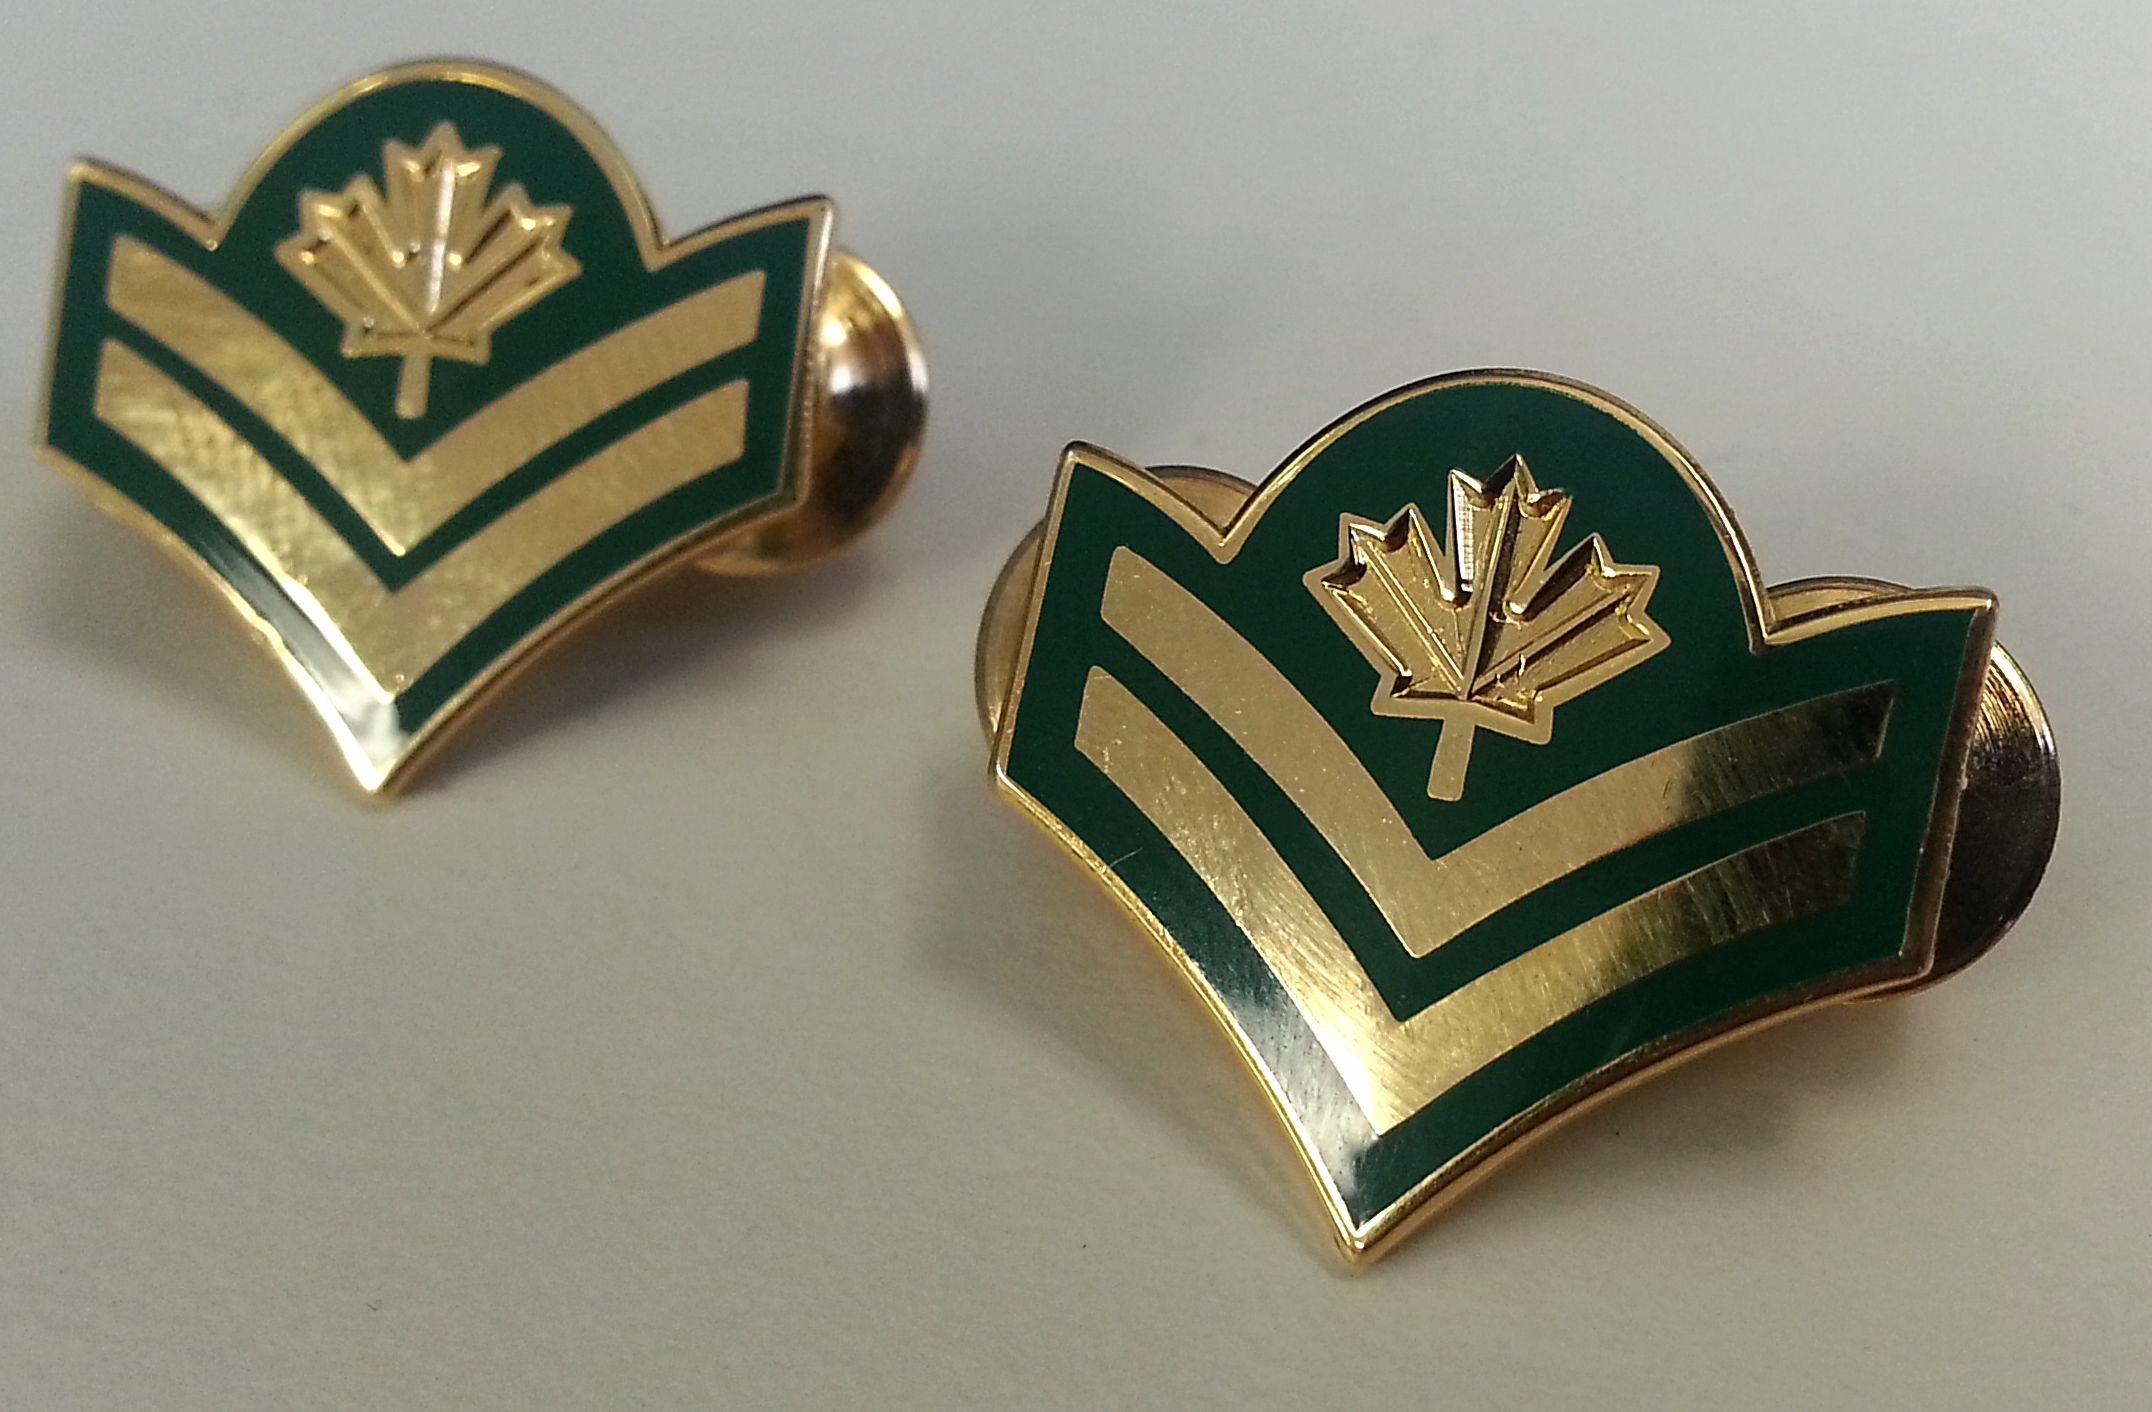 Master corporal rank insignias from the canadian army dress uniform